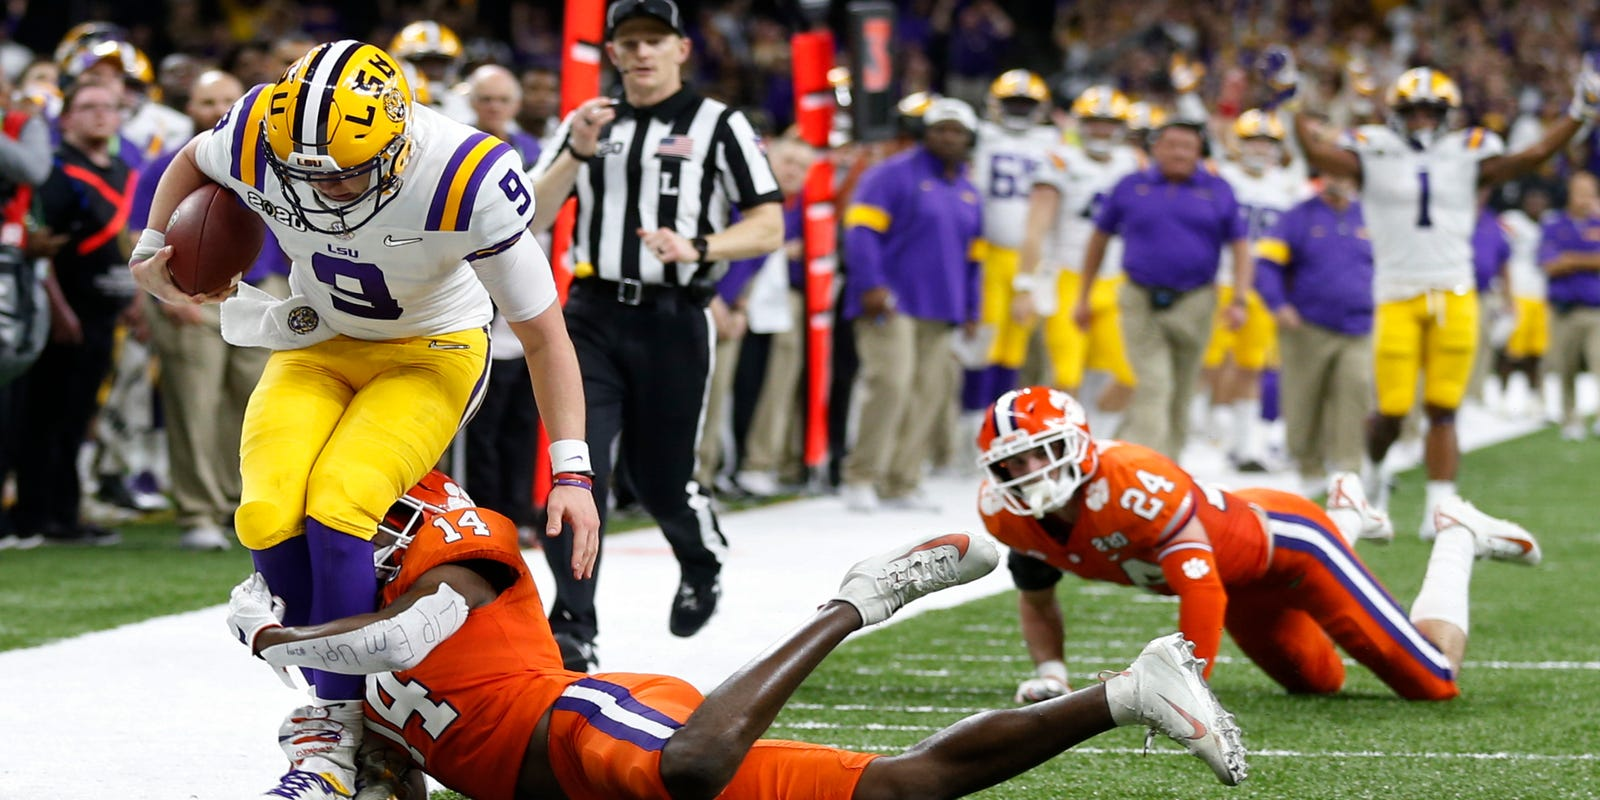 super quality 50% price release info on LSU Tigers defeat Clemson 42-25 in college football championship